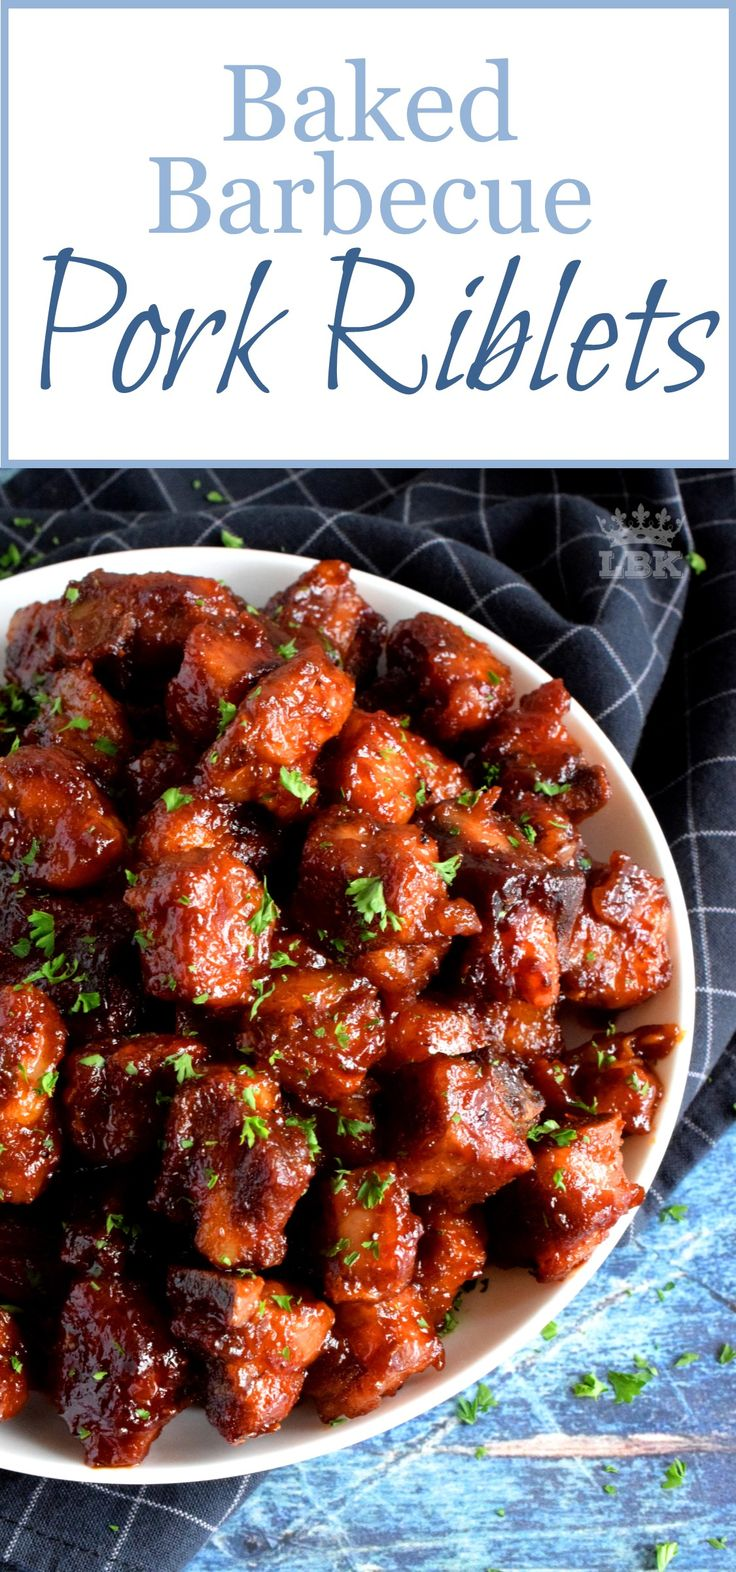 Baked Barbecue Pork Riblets – Perfectly baked, these fork-tender, fall-off-the-b…